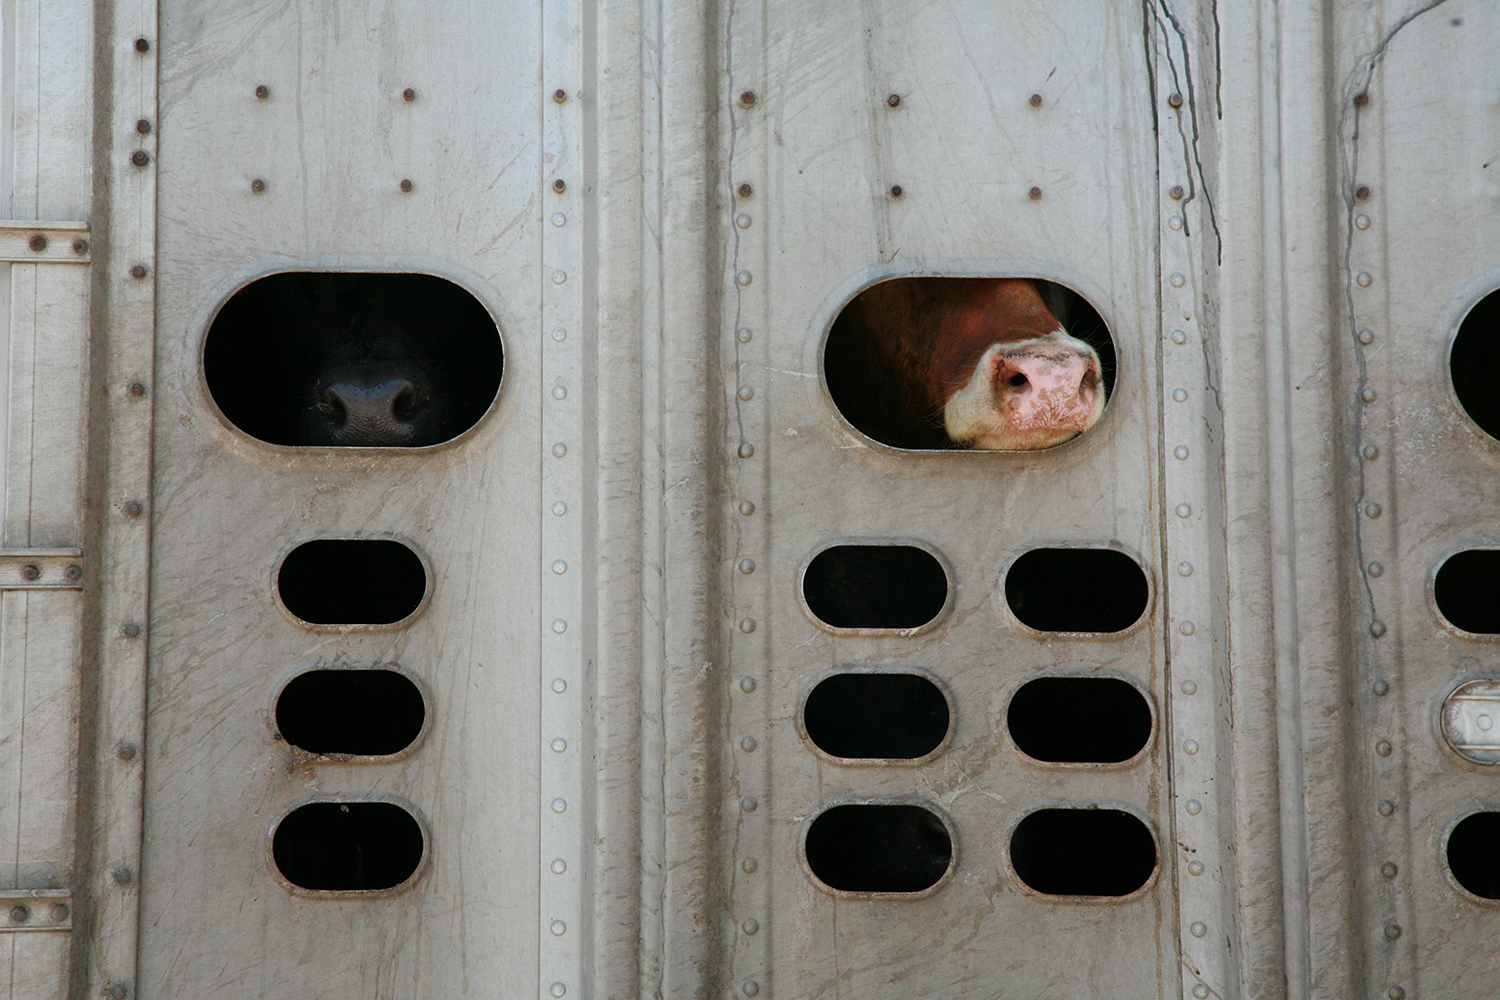 A documentary photograph of a cow sticking his nose out of truck while riding on the highway in the midwest of the united states